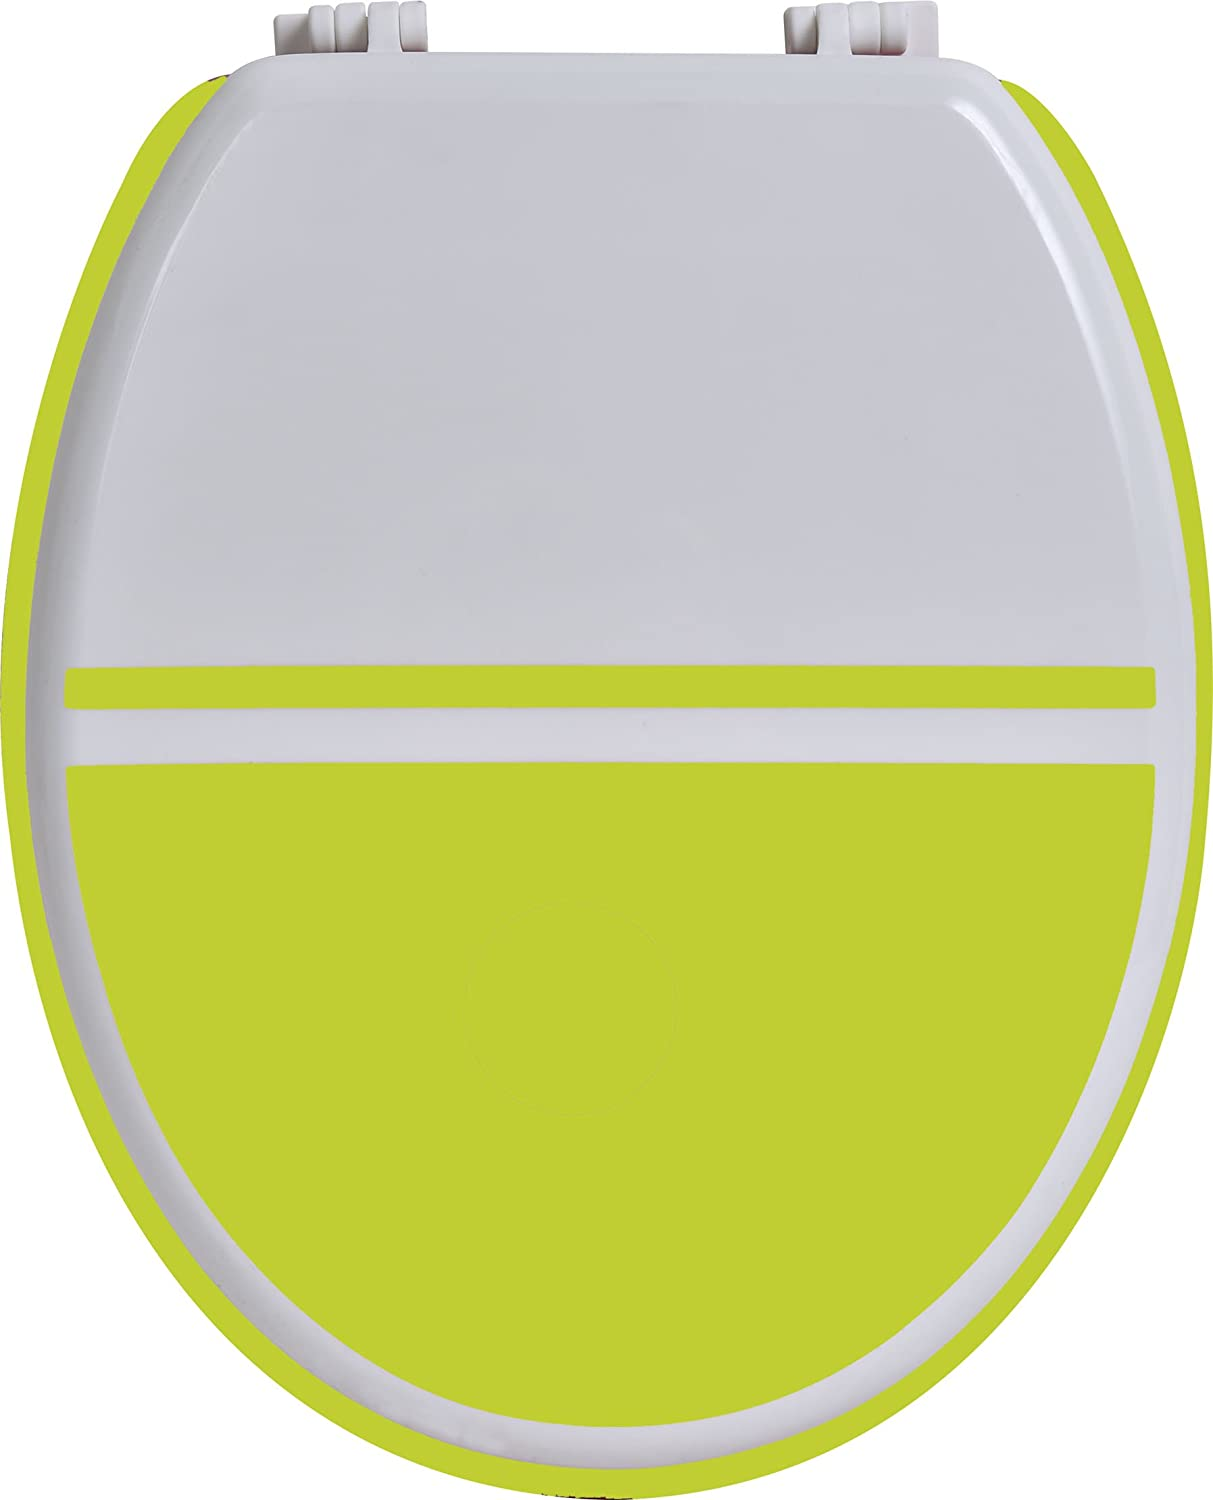 New EVIDECO 4101201 Two Colored Oval Toilet Seat White Lime Green Wood 17 5